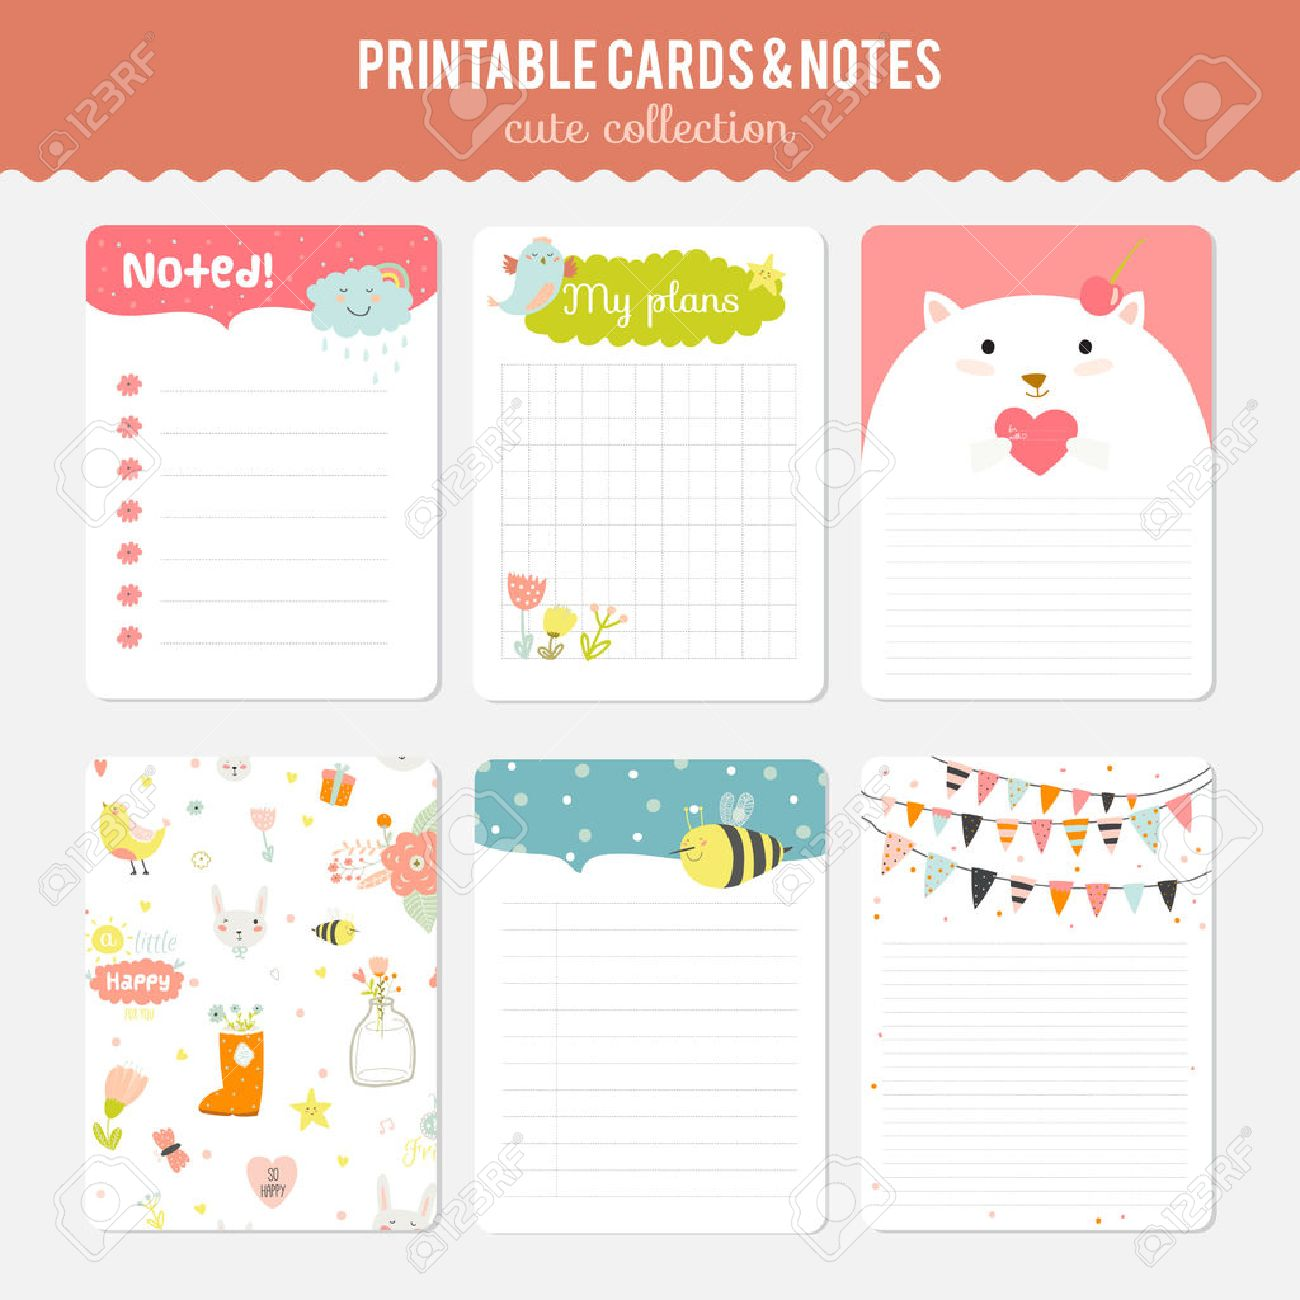 Scrapbook paper note - Cute Cards Notes And Stickers With Spring And Summer Illustrations Template For Scrapbooking